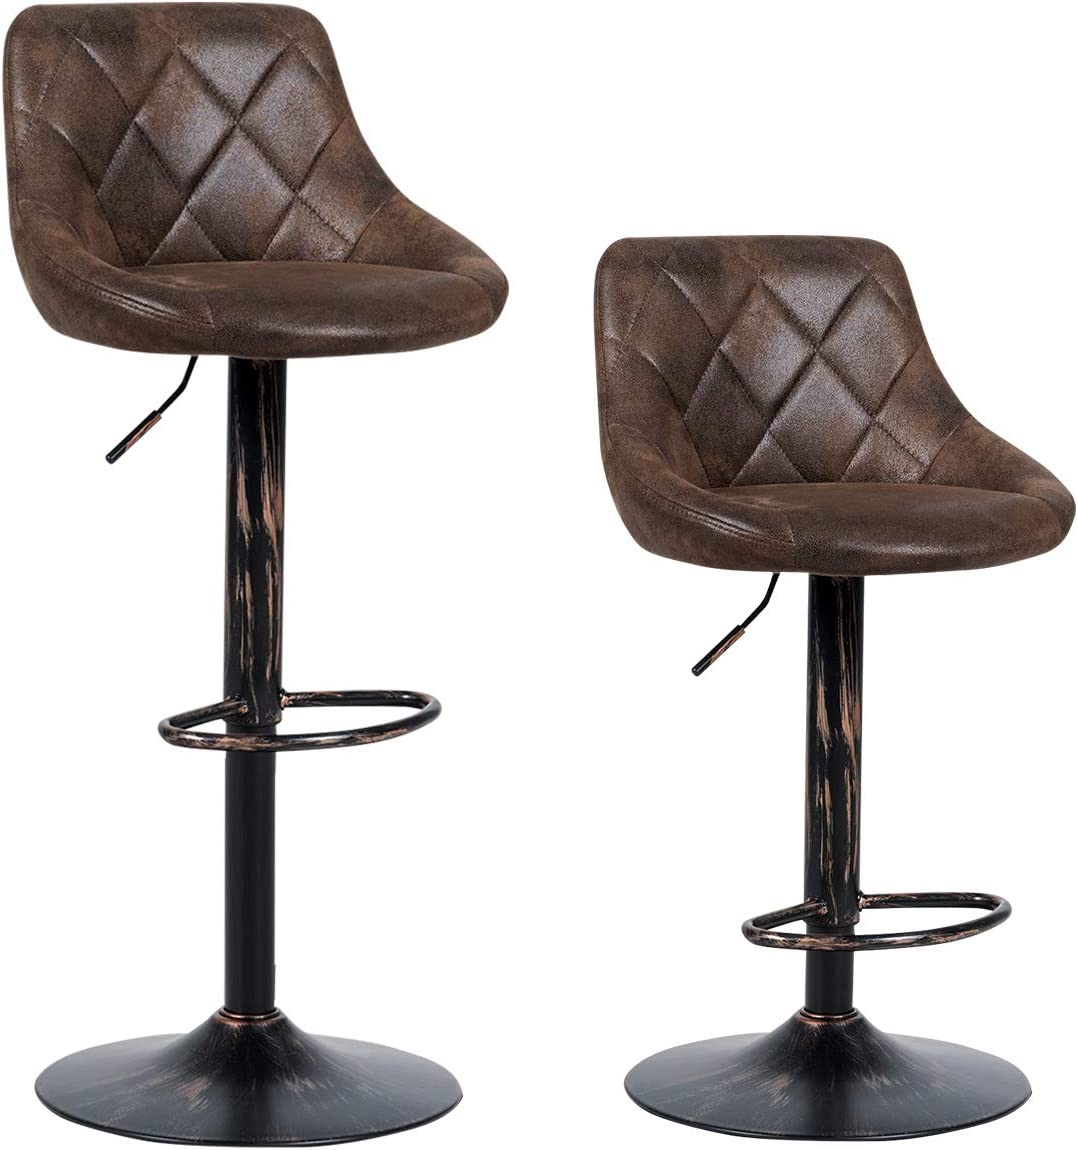 COSTWAY Set of 2 Adjustable Bar Stools, Swivel Bar Chairs with Backrest and Footrest, Counter Height Chairs for Bar, Kitchen, Dining Room, Living Room and Bistro Pub, Retro Brown